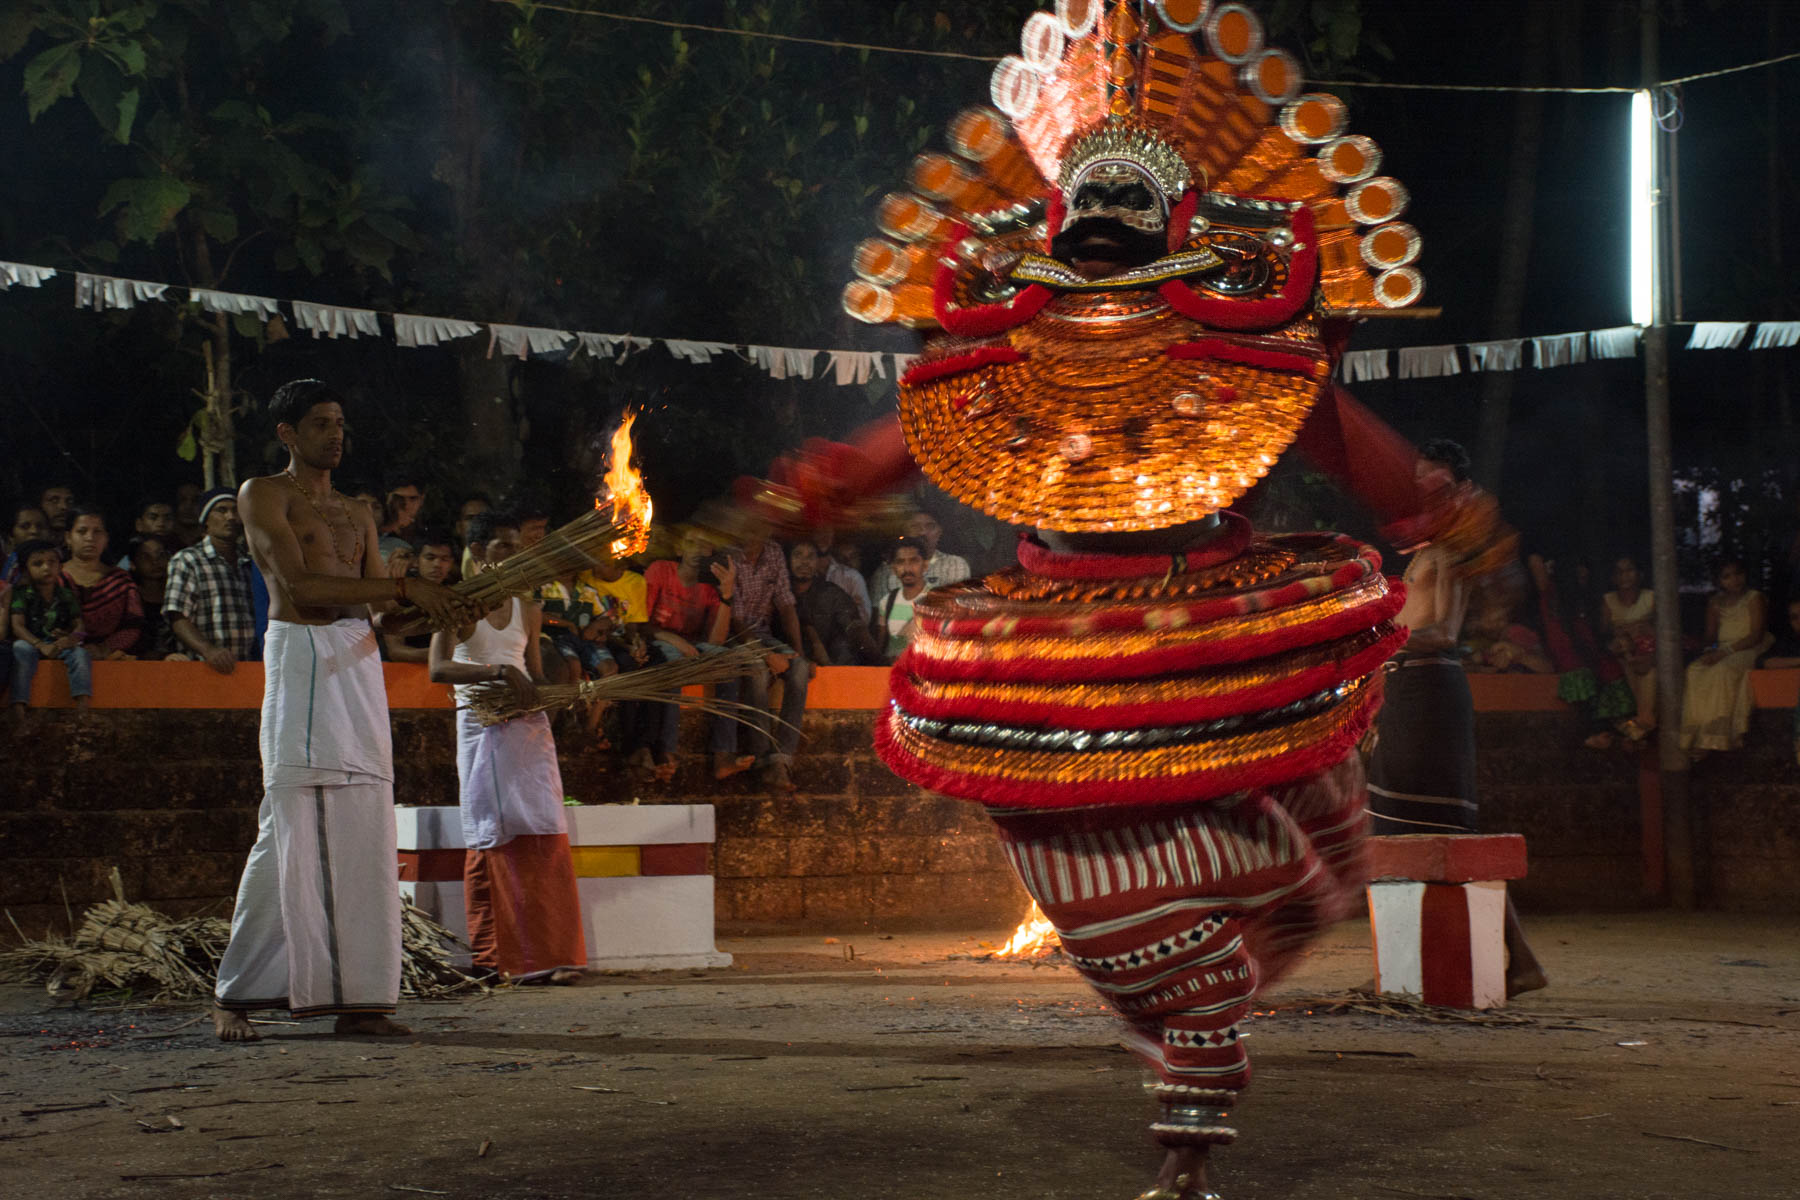 Spinning Theyyam dancer with a priest in the background